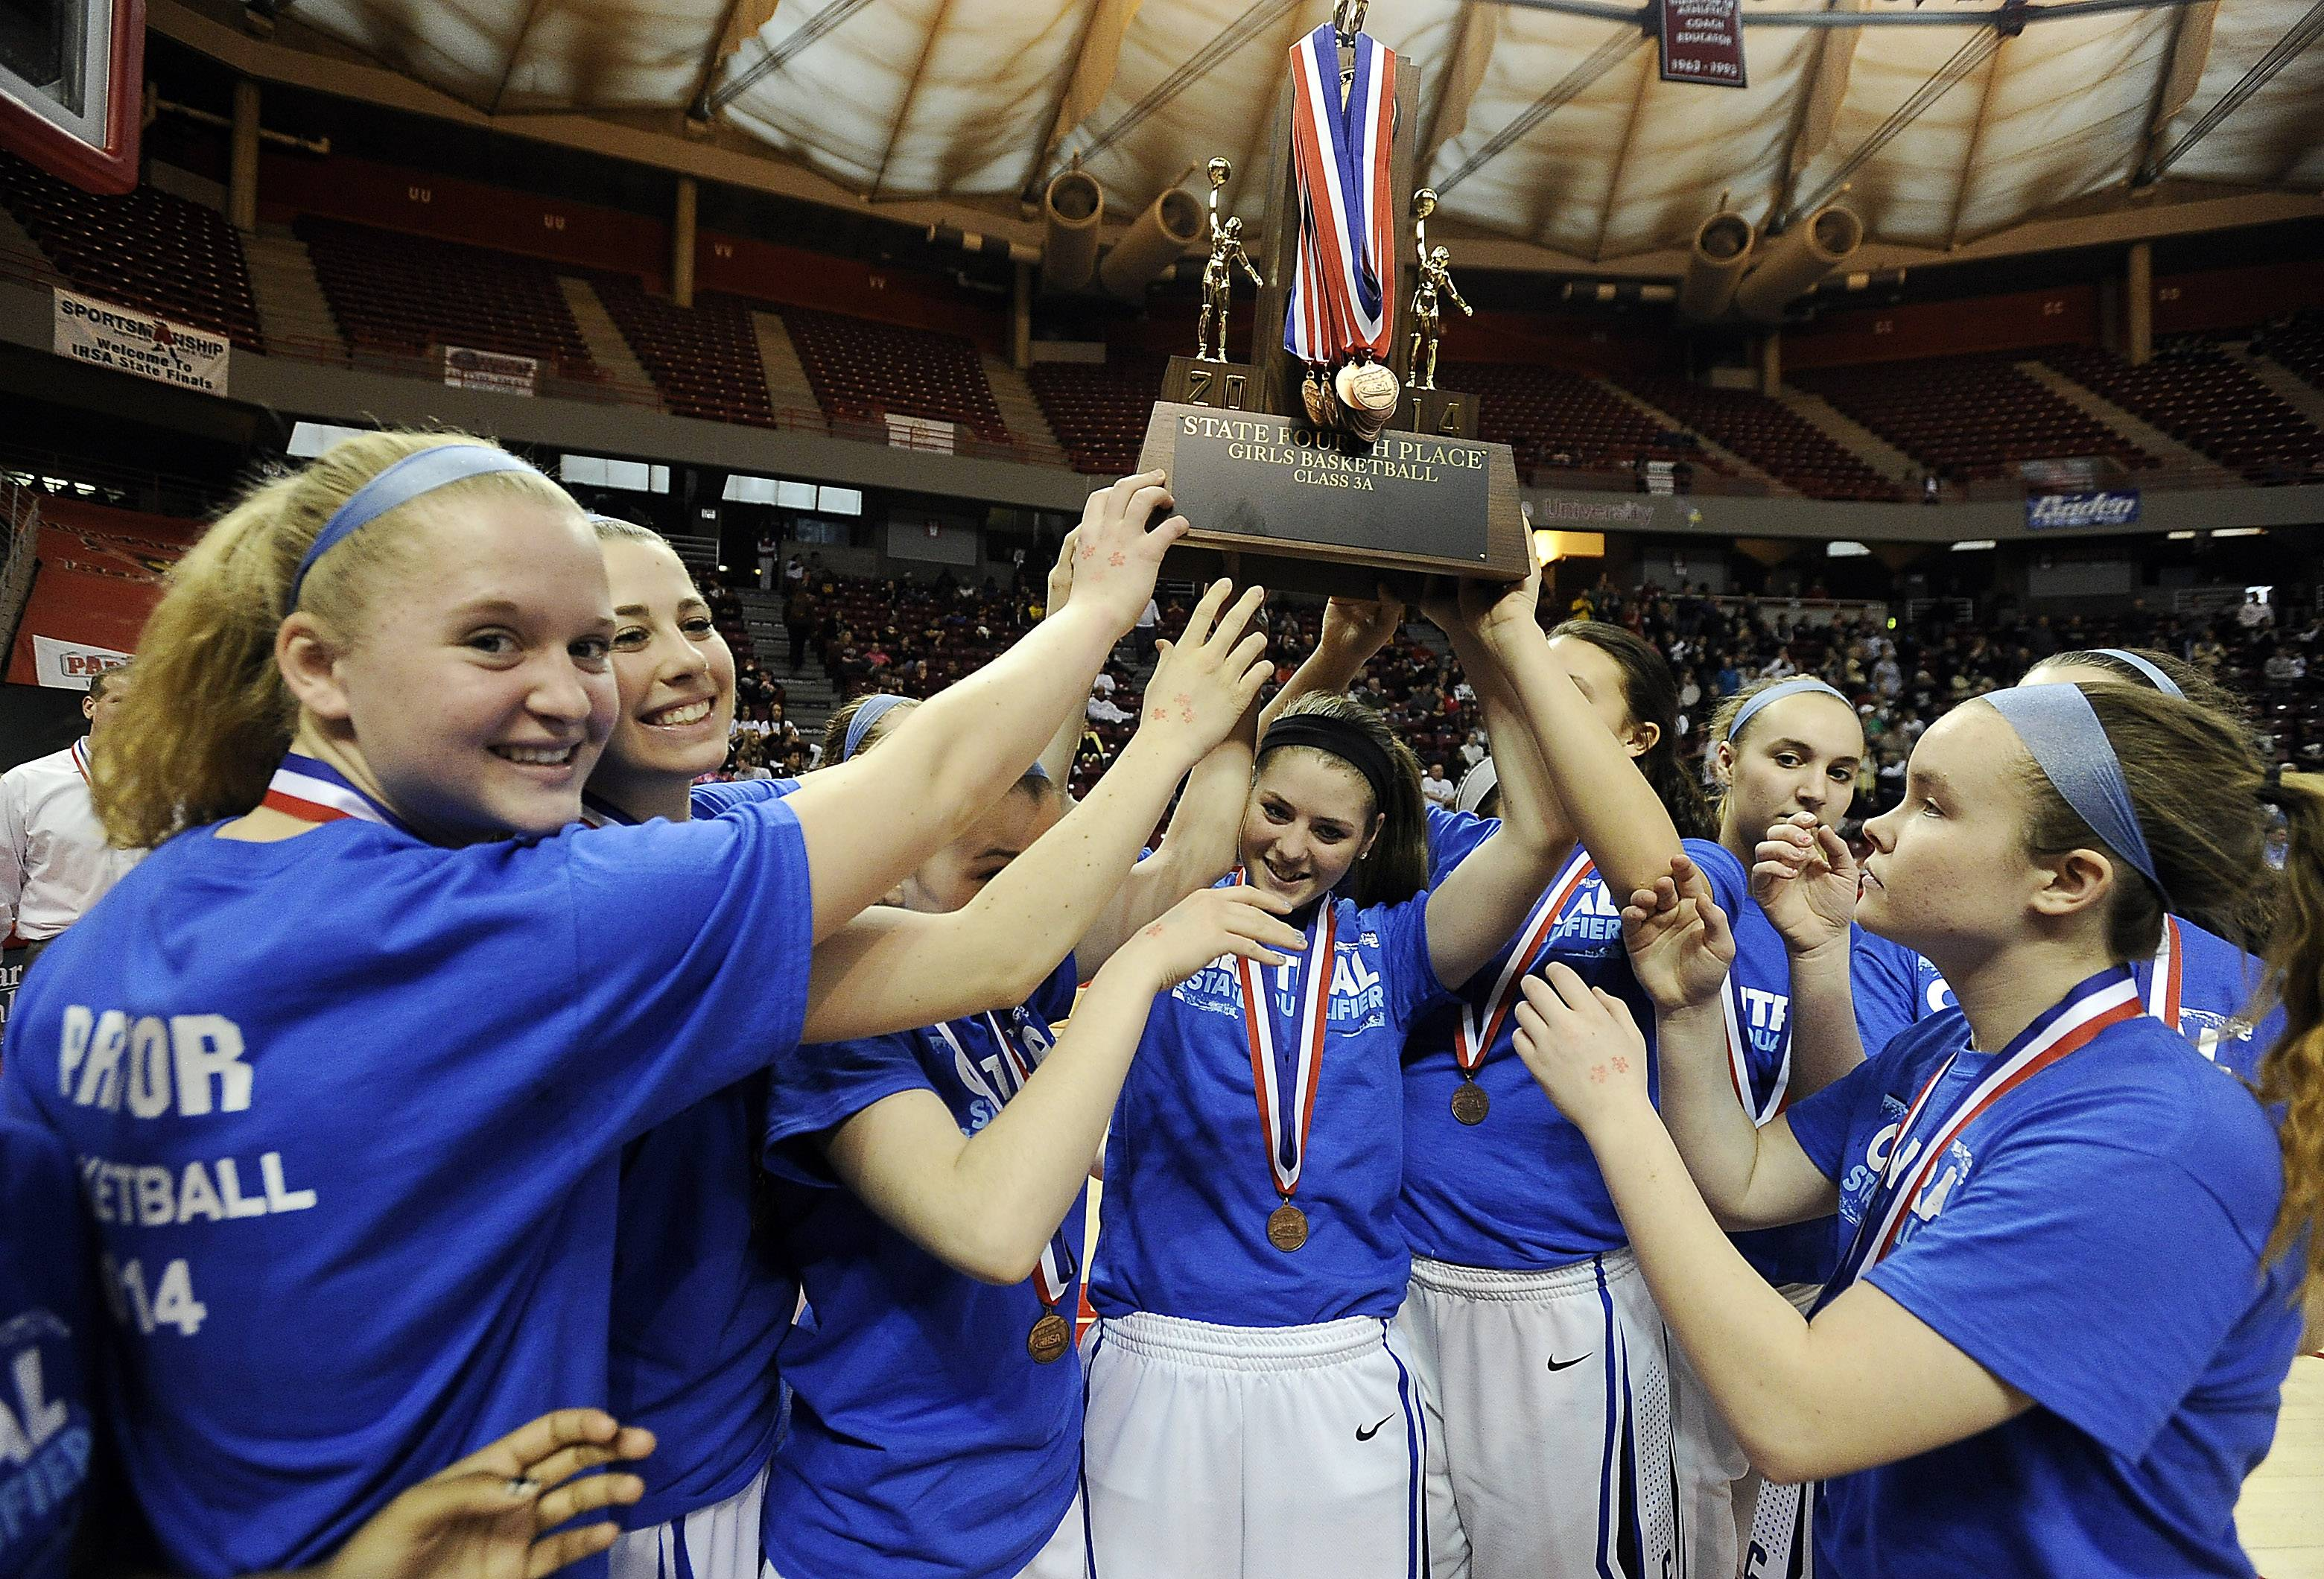 Despite loss, Burlington Central satisfied with state trip